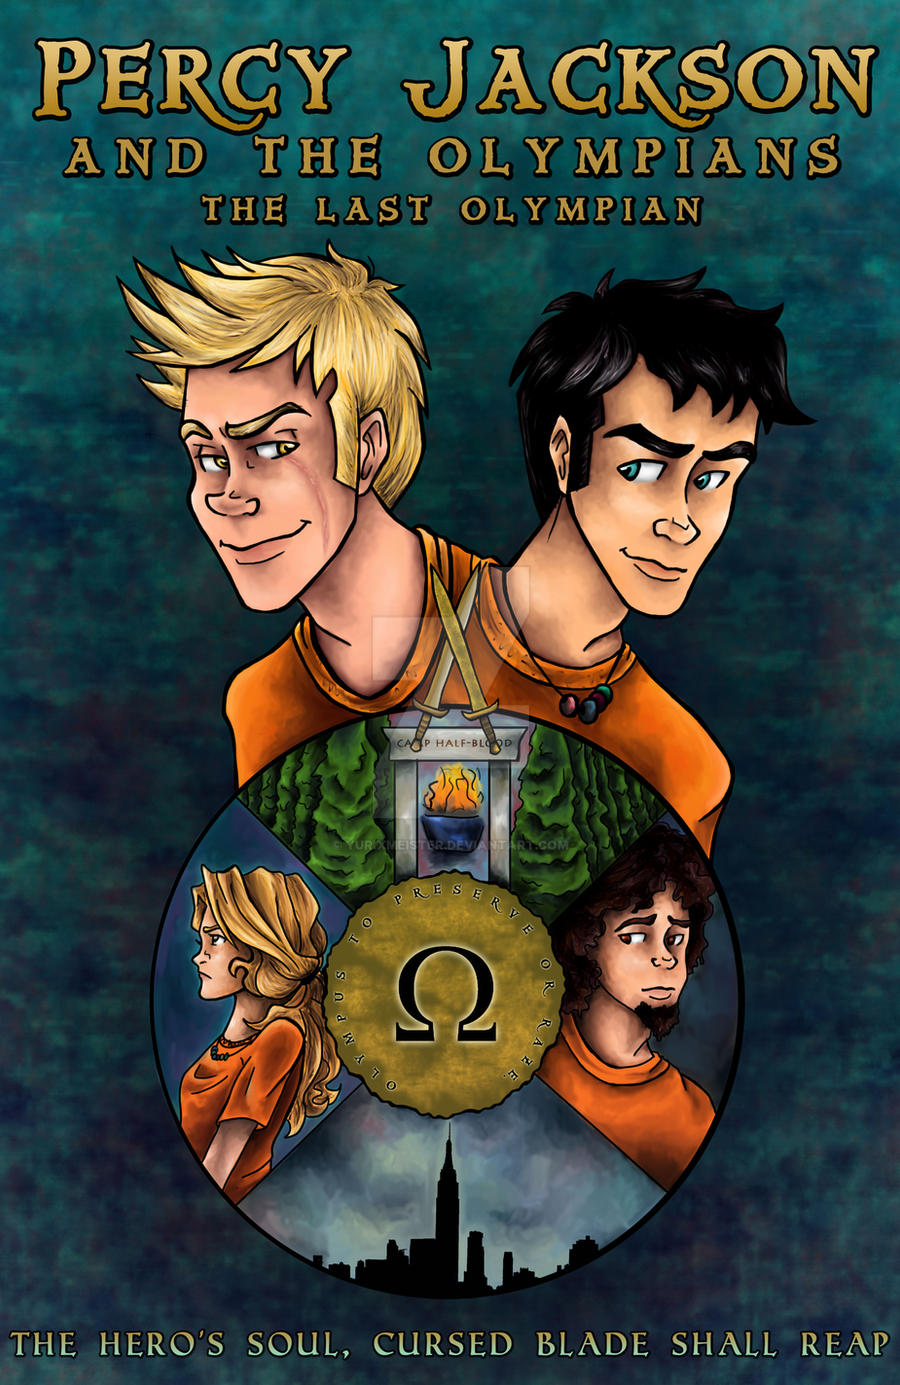 the last olympian Download free ebook:percy jackson the olympians (5 ebooks) - free chm, pdf ebooks download.